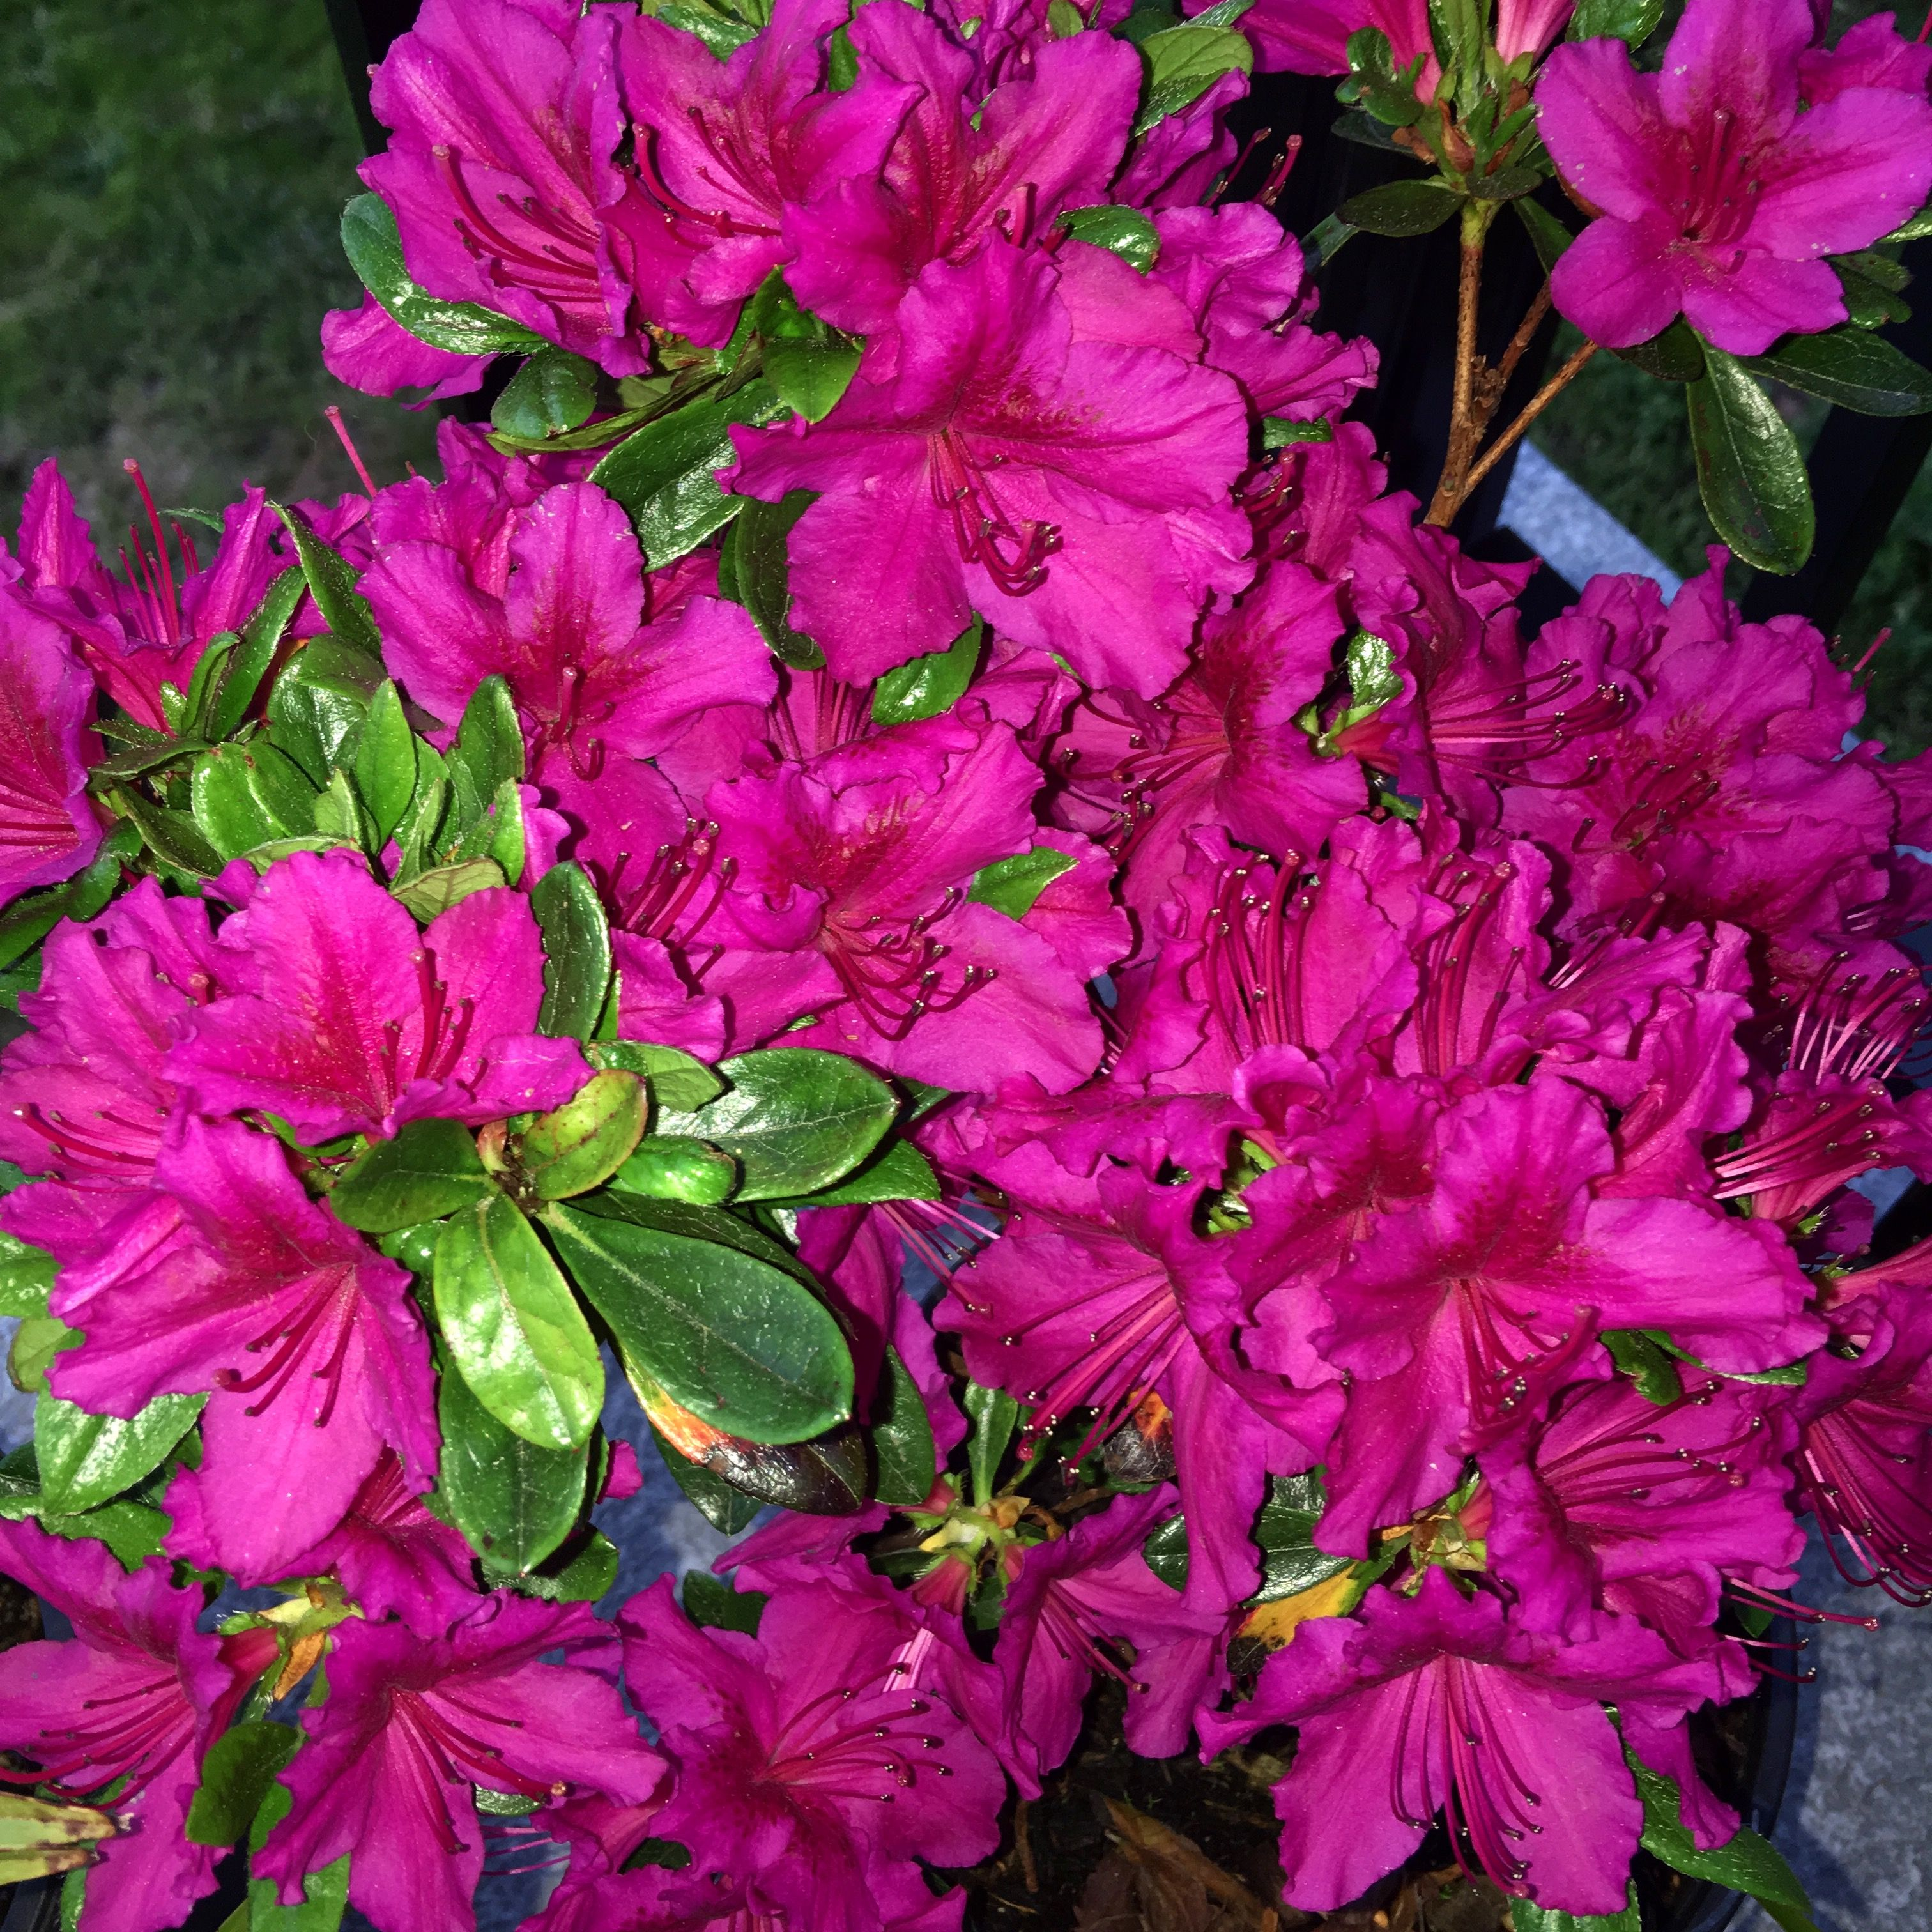 Rhododendron Girard S Fuchsia Rhododendron Plants Flowers